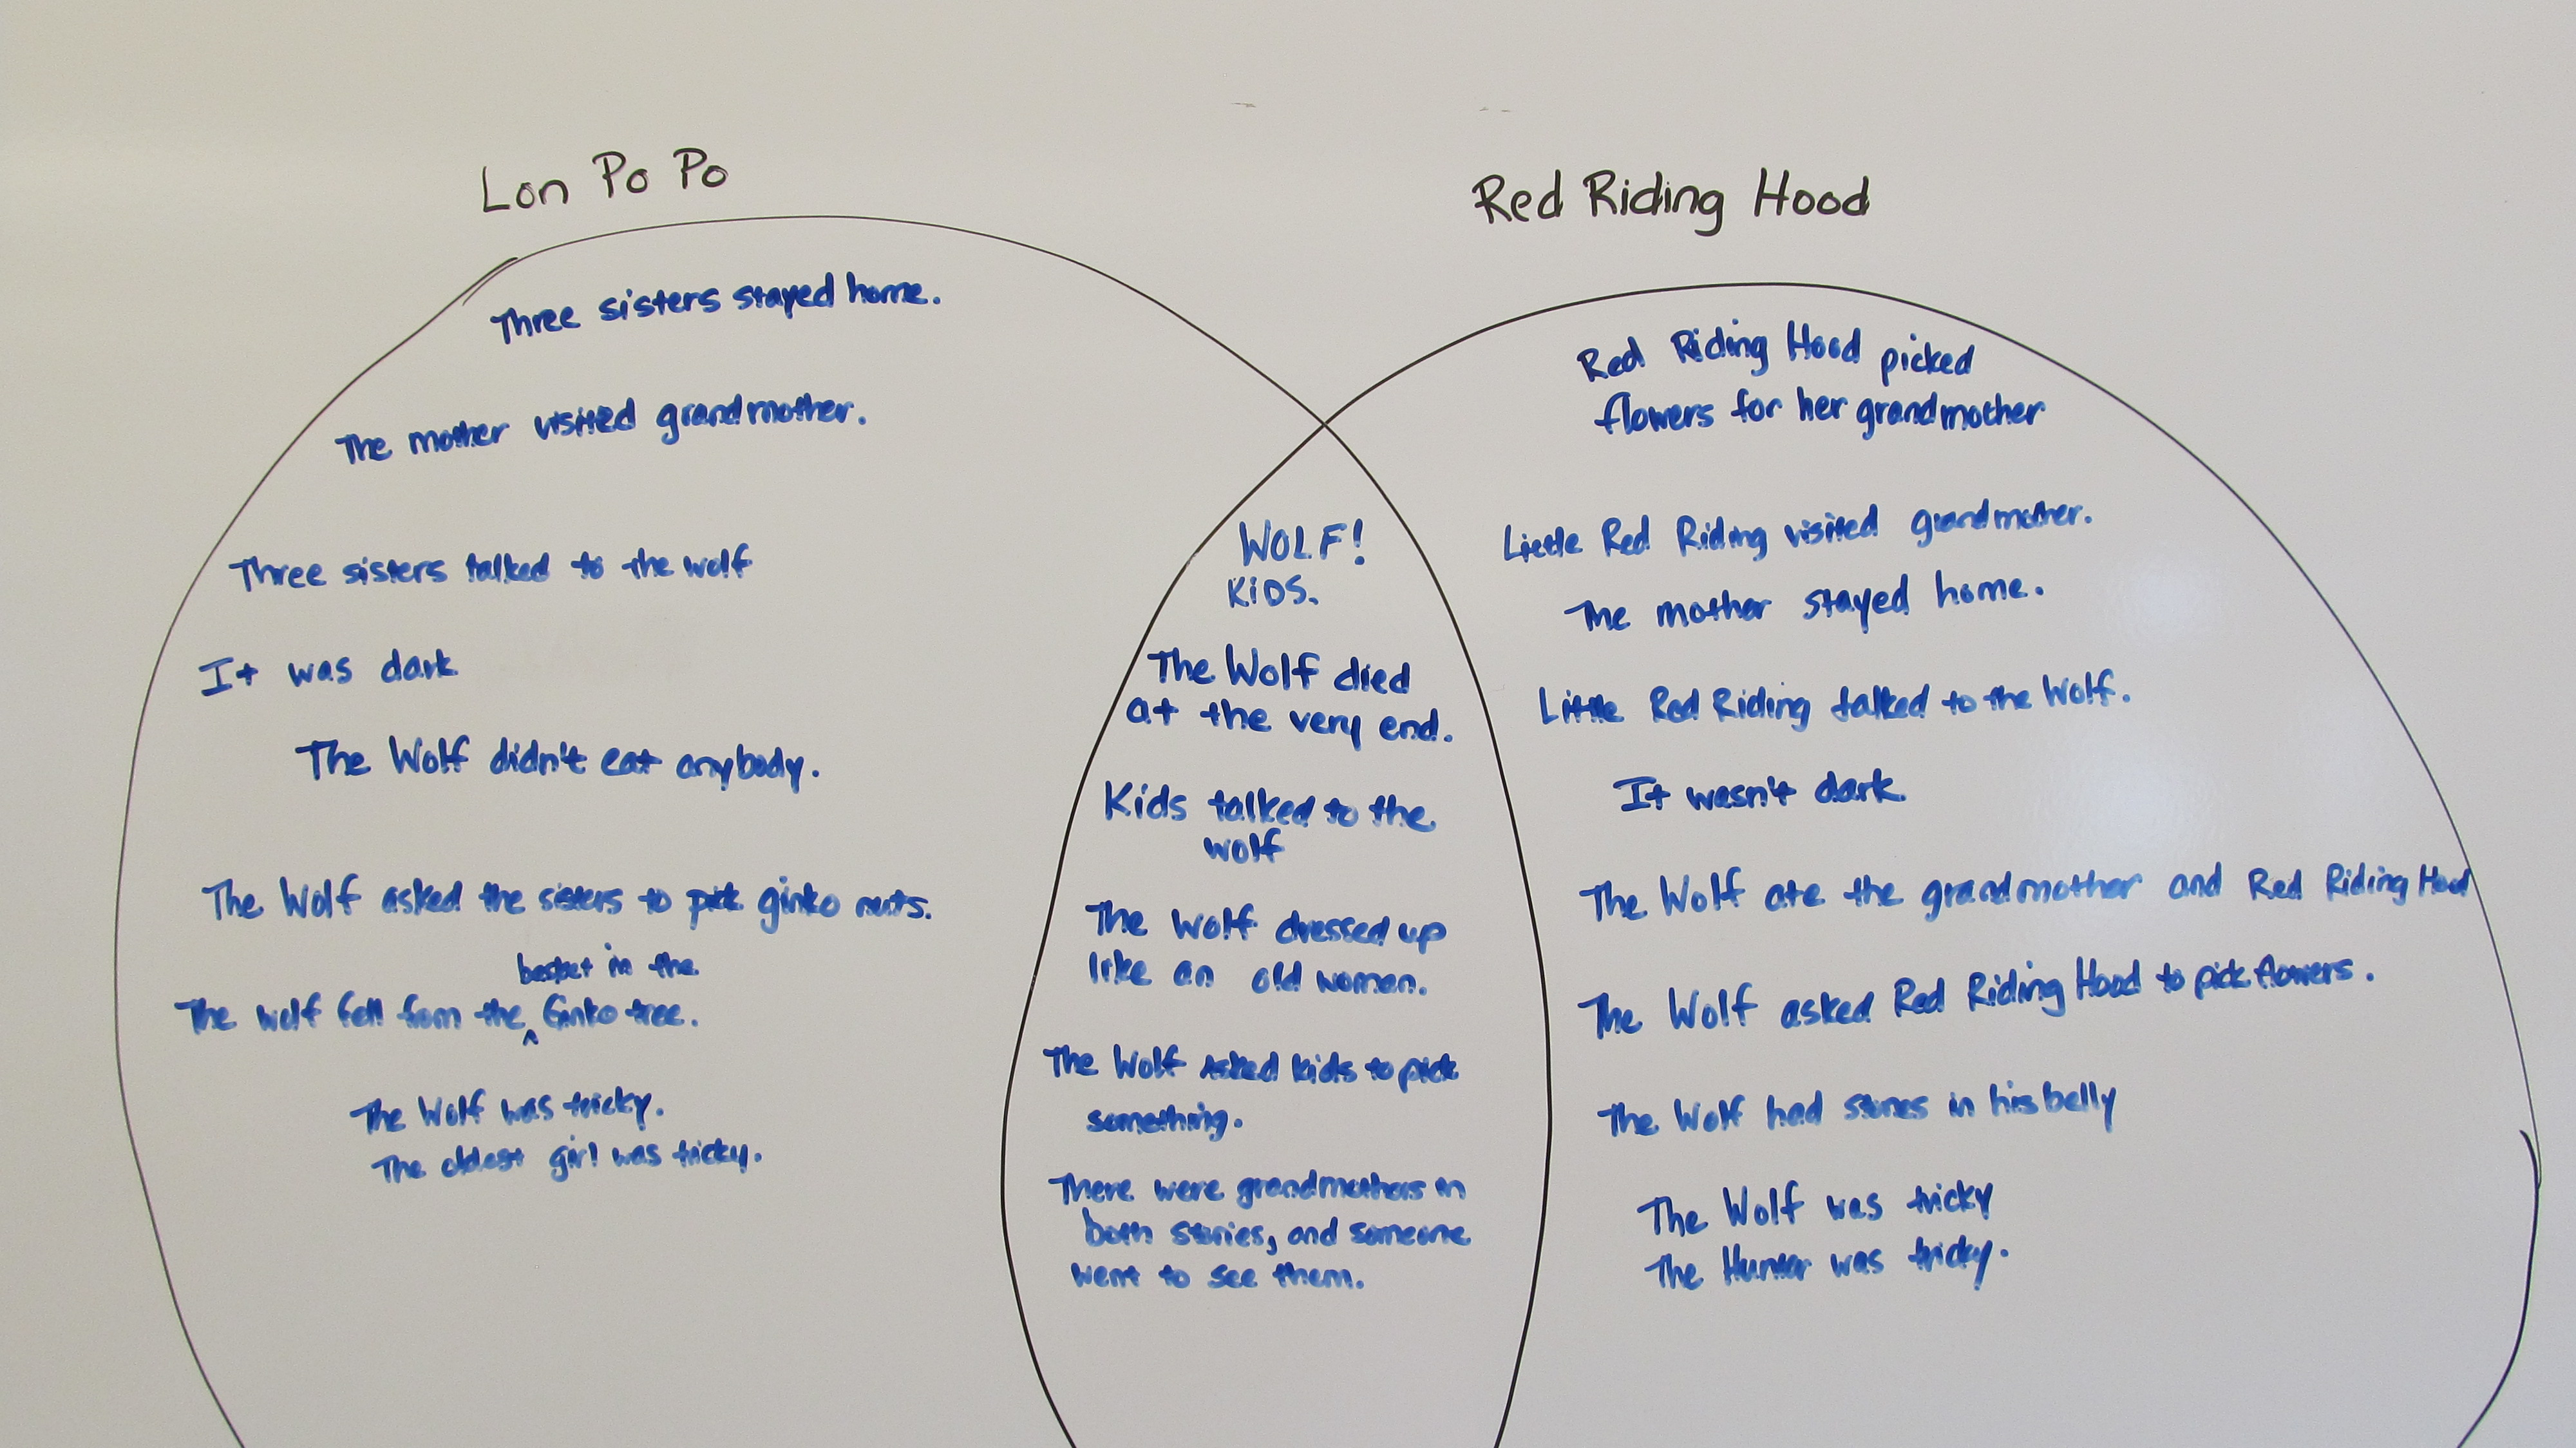 cinderella venn diagram compare contrast rv water heater wiring variations on a theme hands full of grass